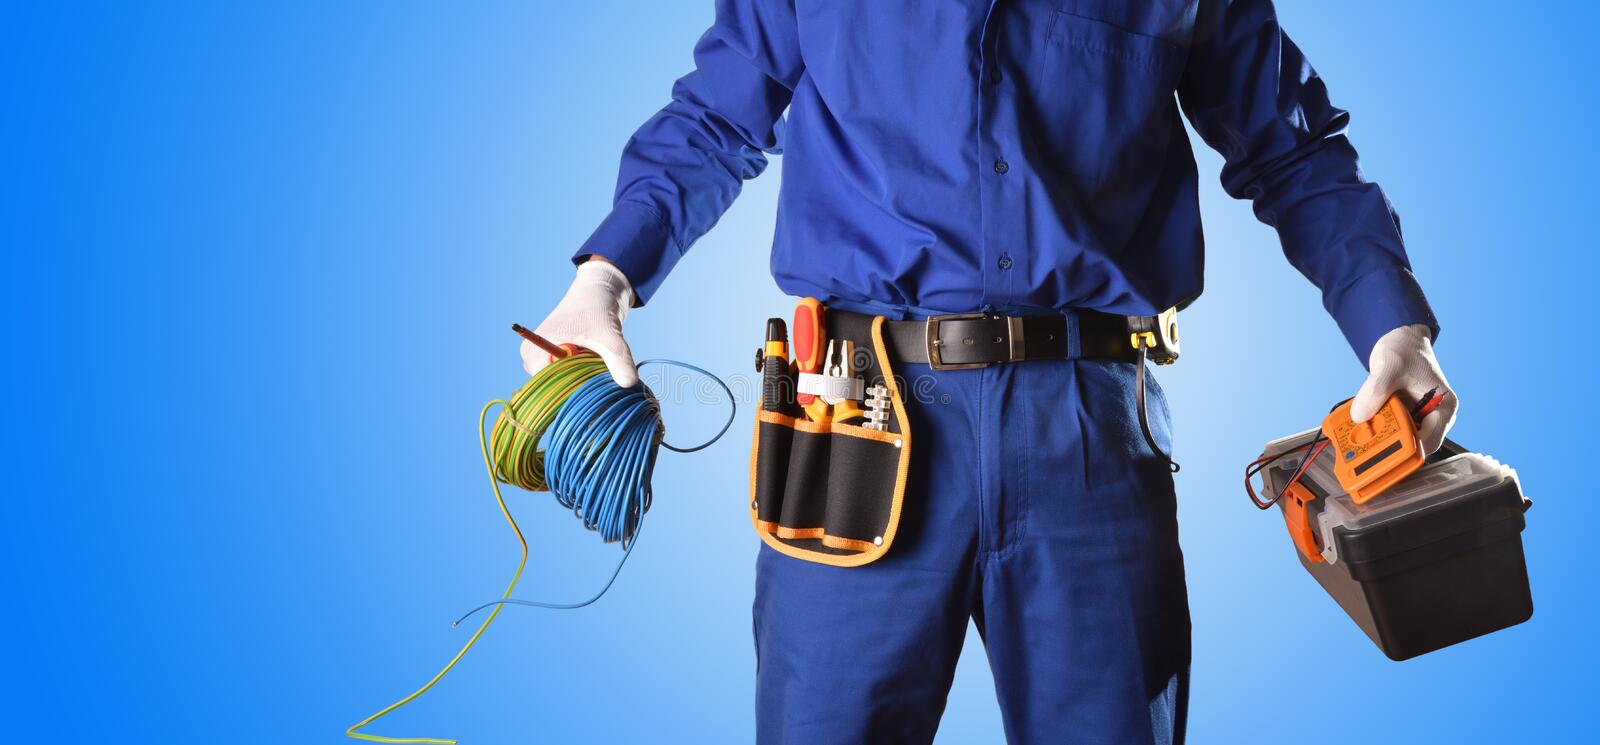 Background uniformed electrician with tools and electrical equipment only body royalty free stock images